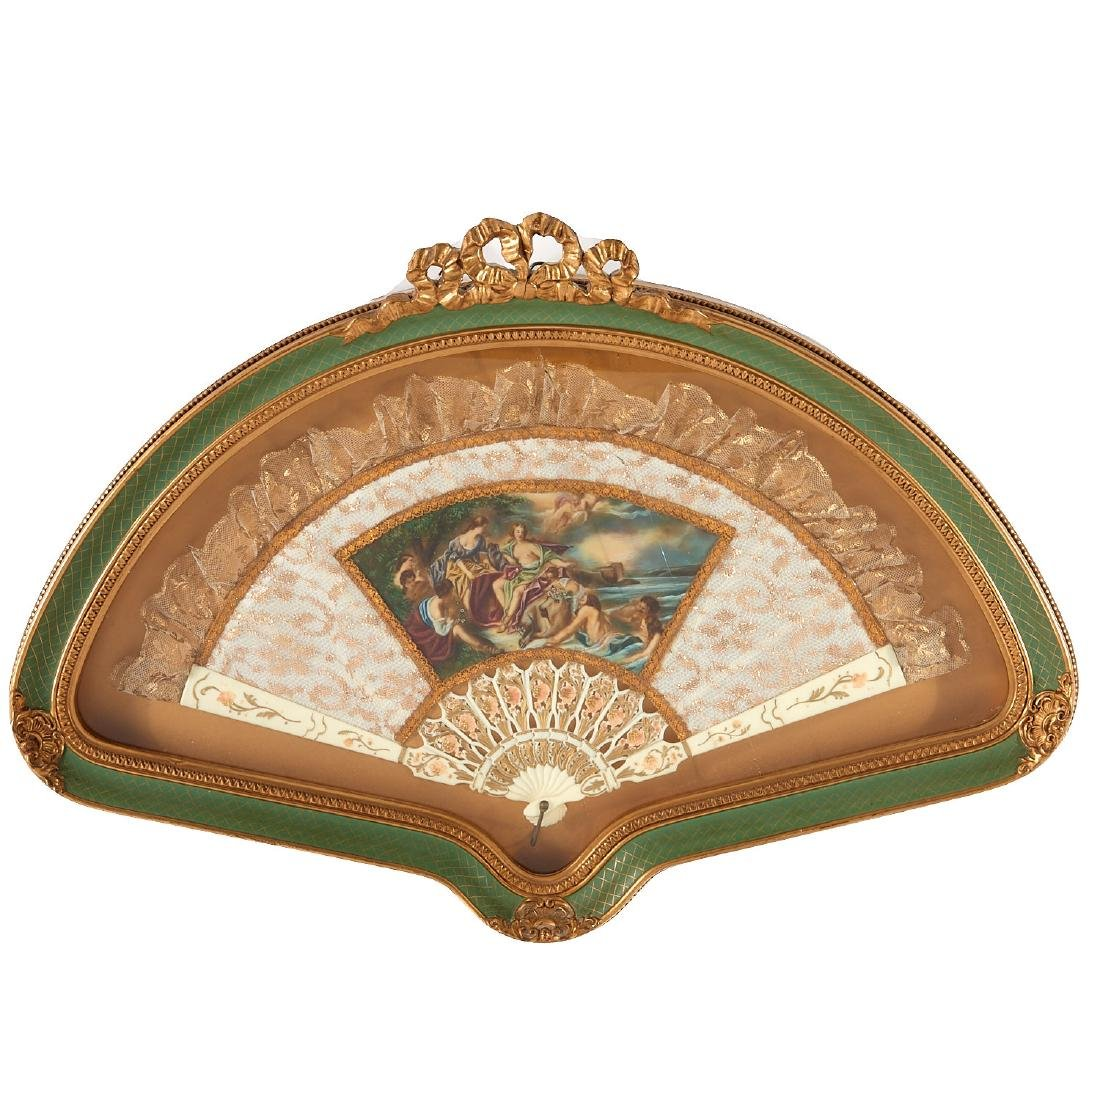 Ladies hand fan with painted panel